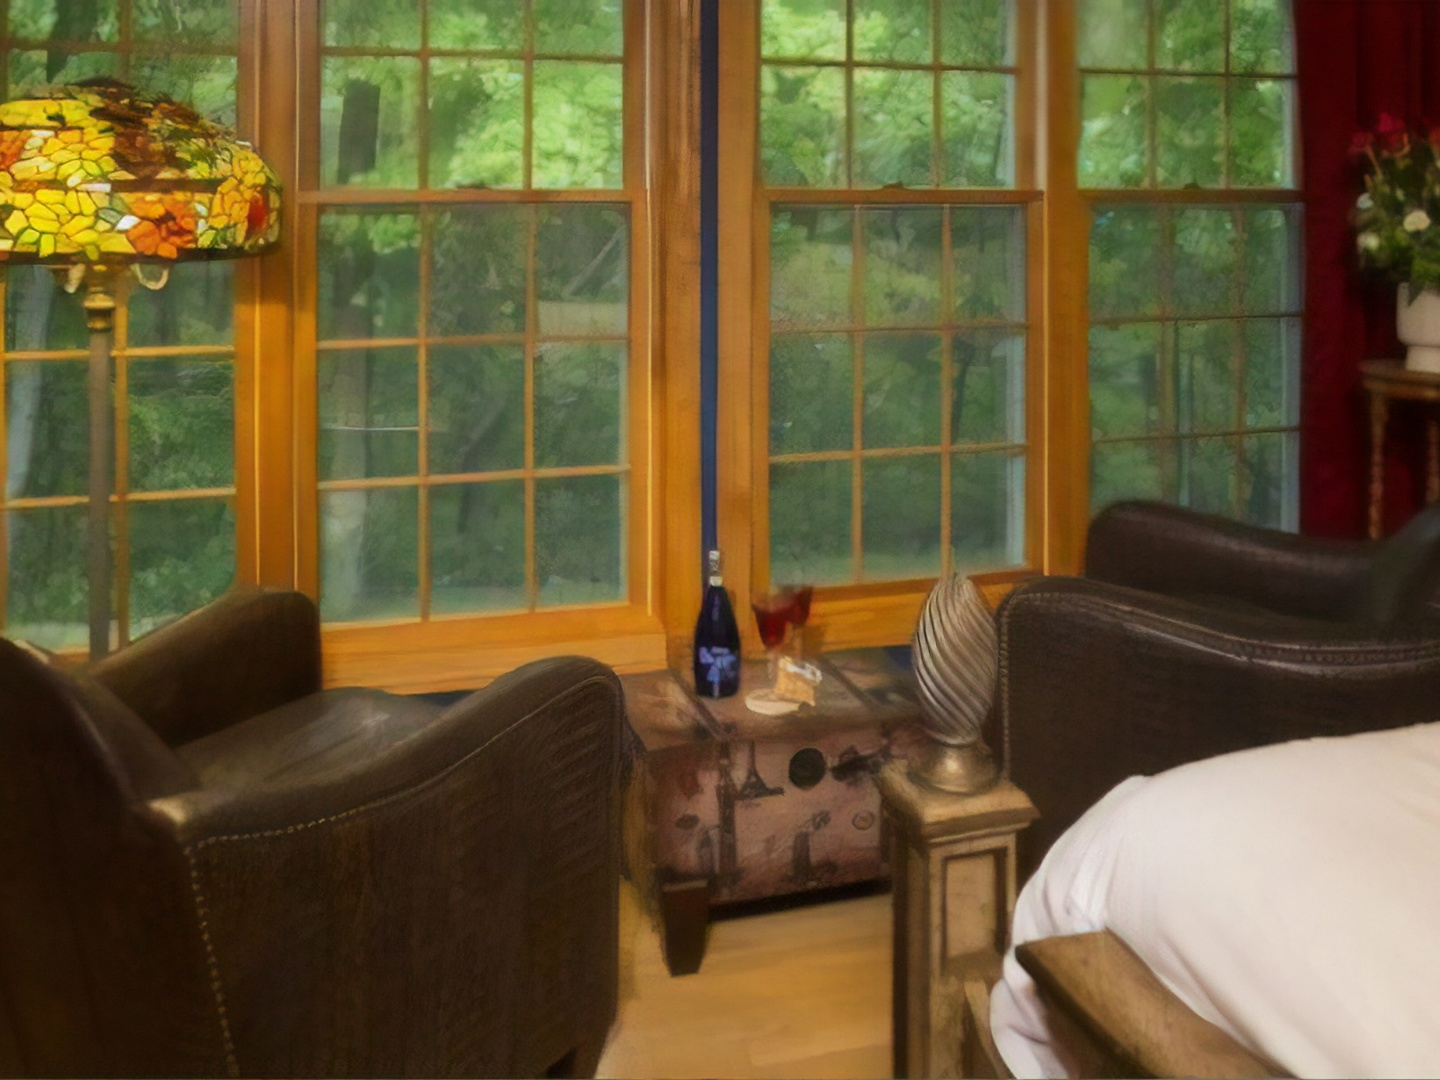 A living room filled with furniture and a large window at Hidden Serenity Bed & Breakfast.